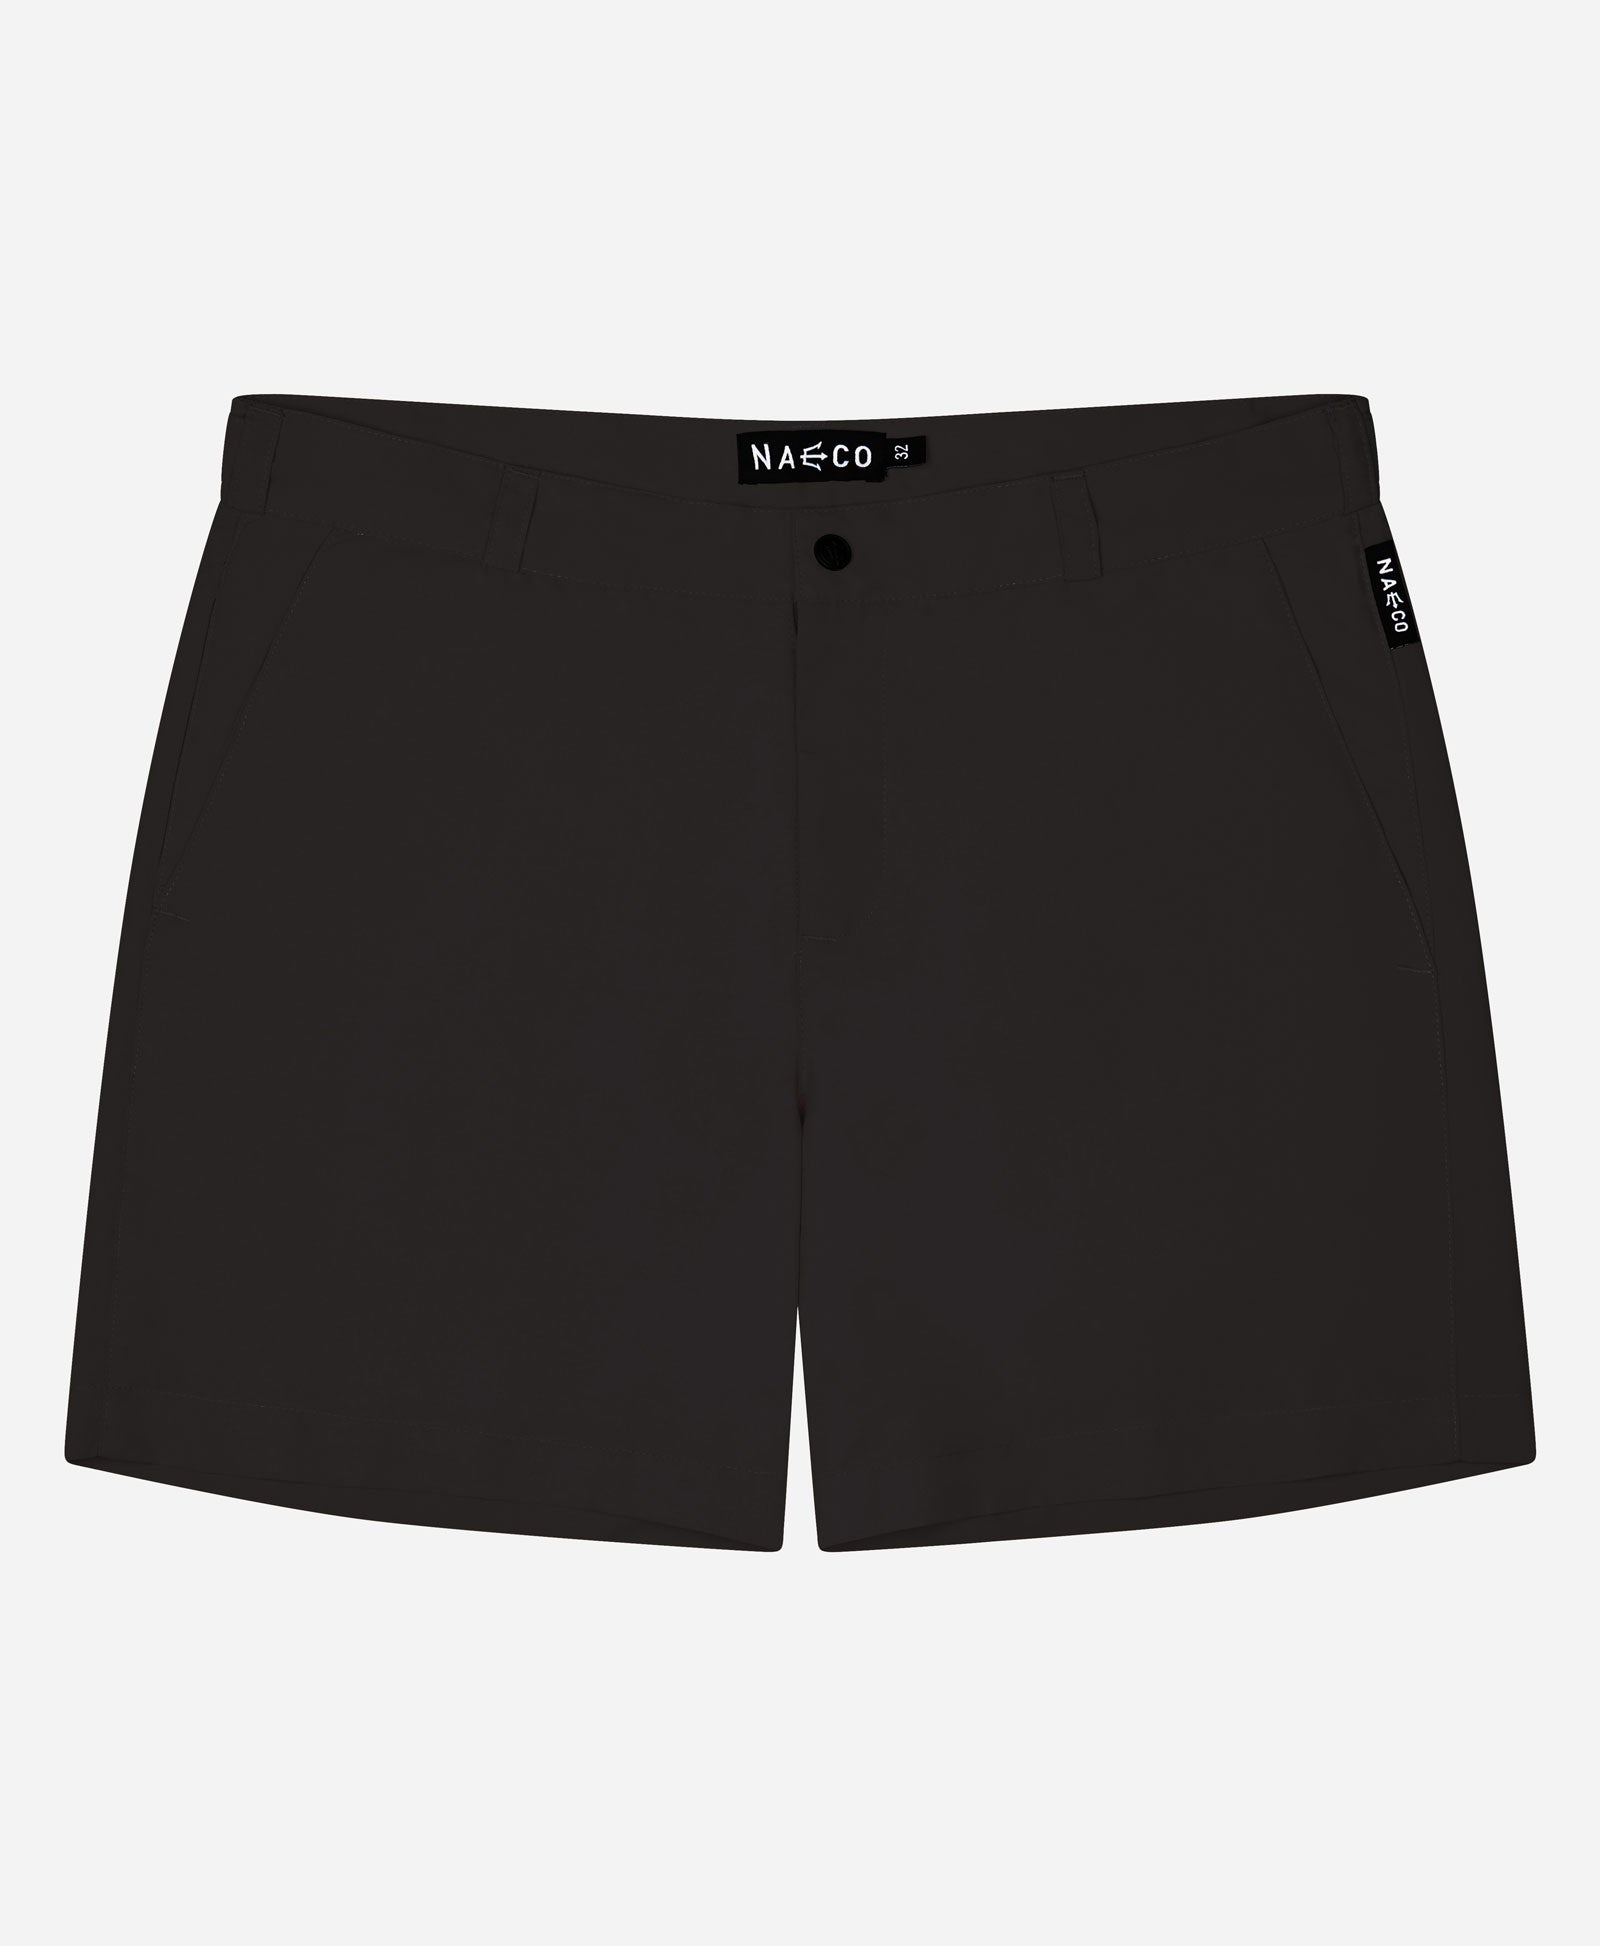 Tailored Original Swim Shorts - Orca Black